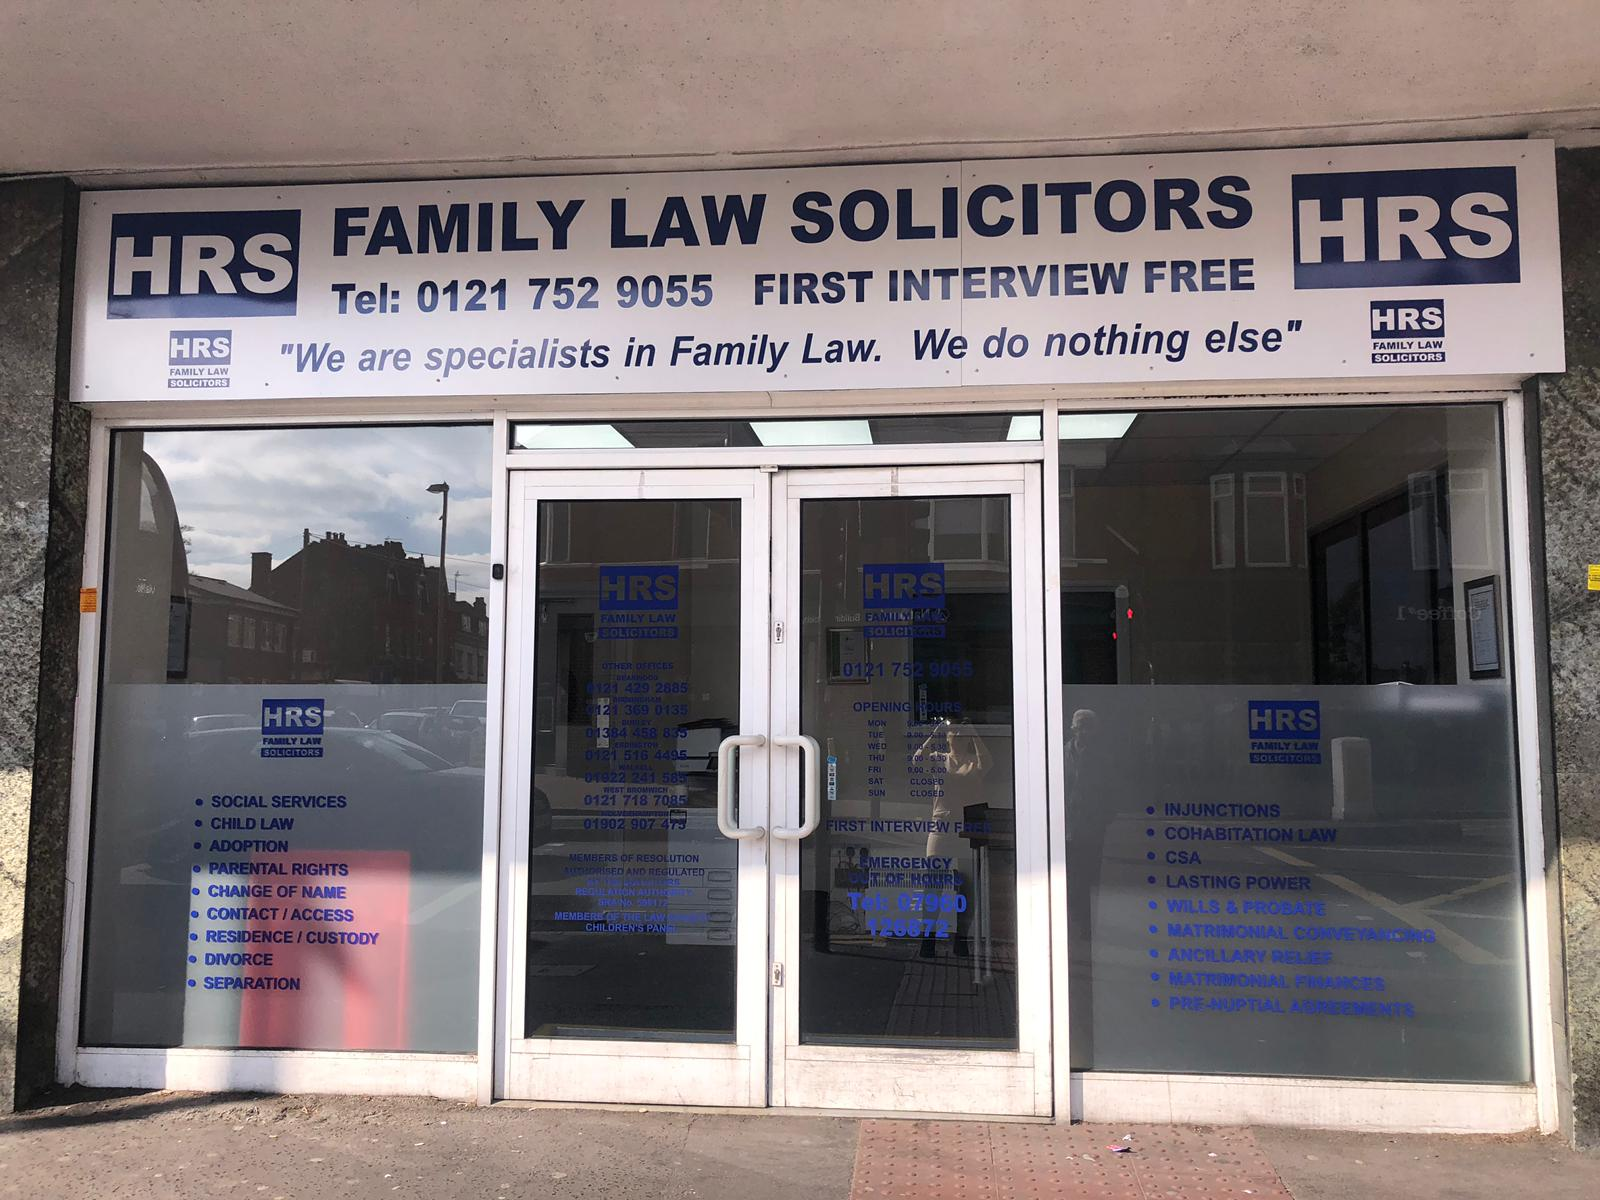 Solicitors Kings Heath Hrs Family Law Solicitors 0121